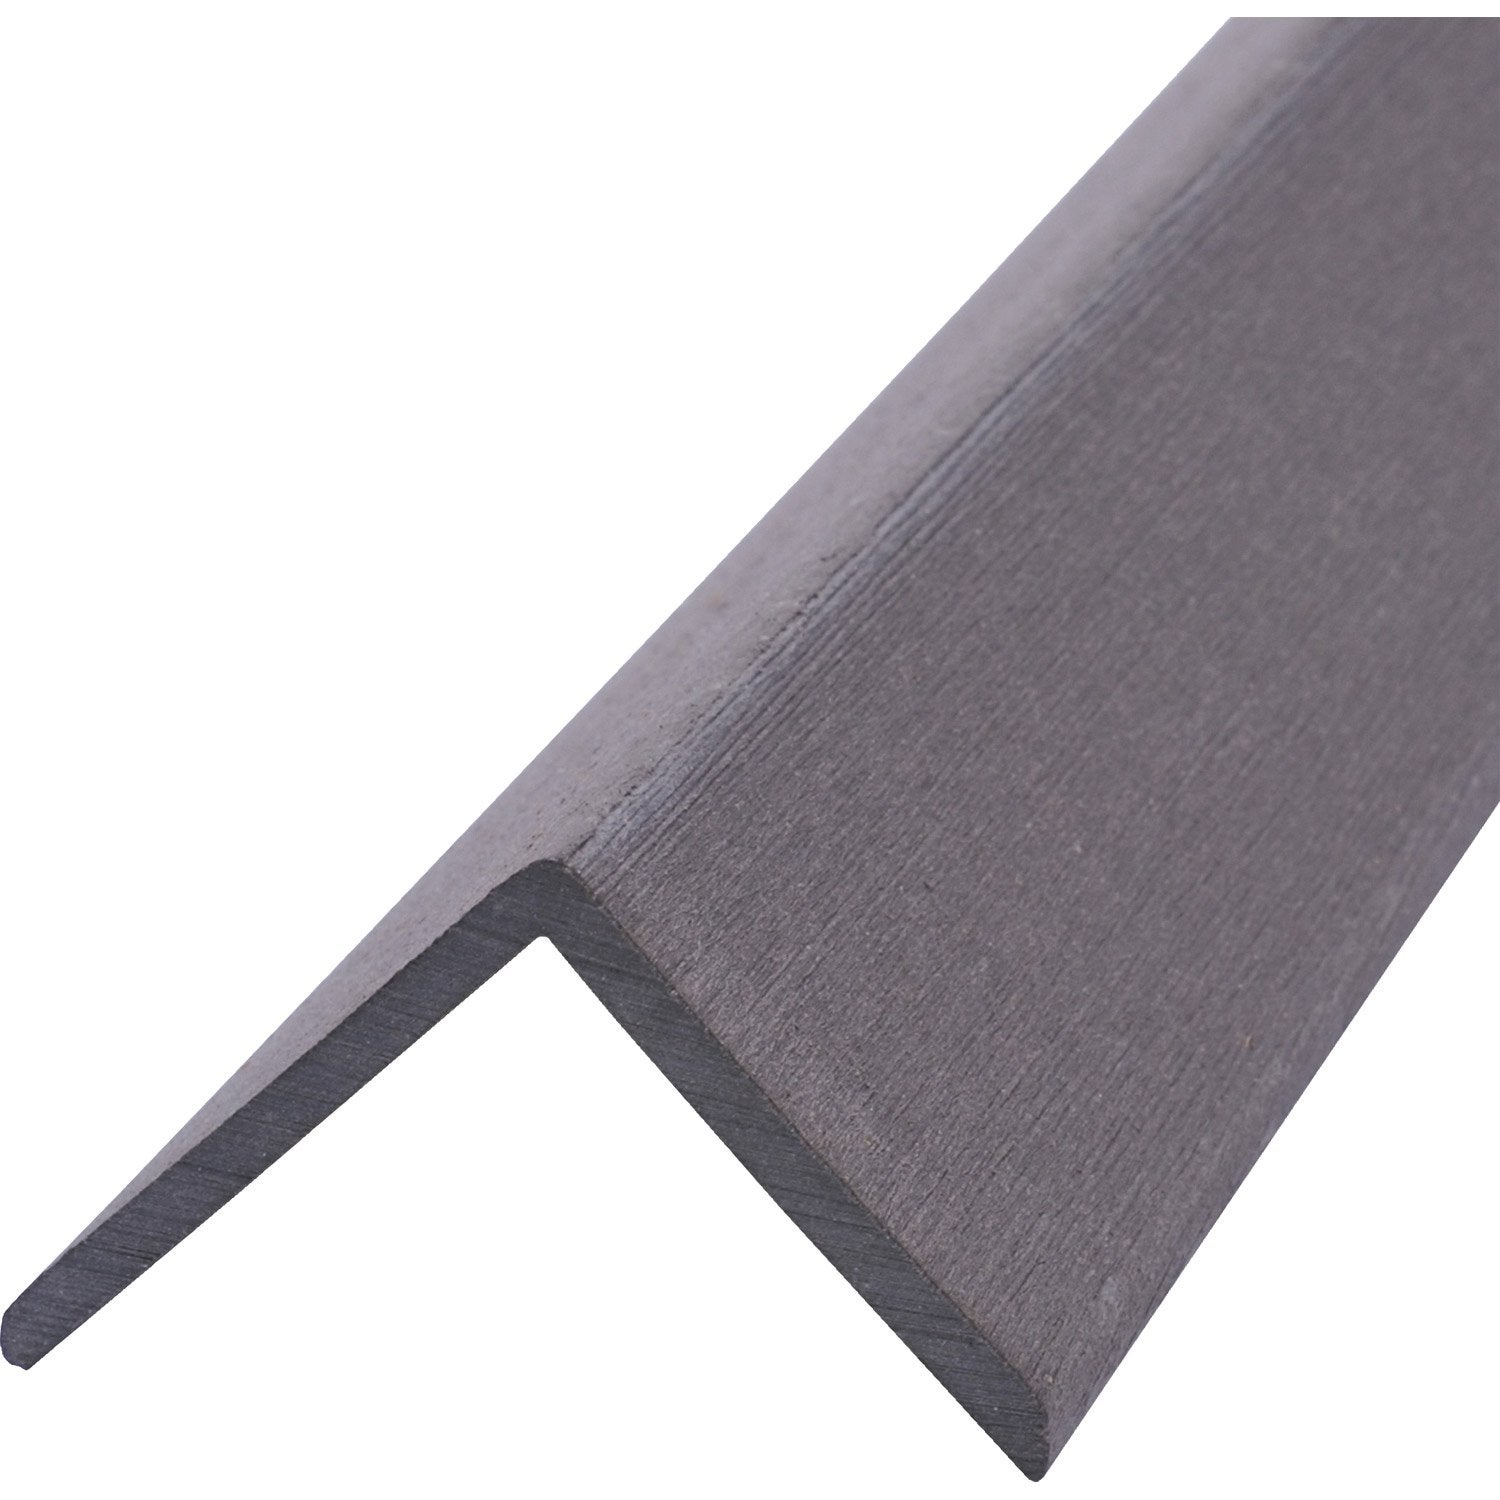 Angle composite 2700 x 50 gris 2 7 m leroy merlin - Pose lame composite leroy merlin ...